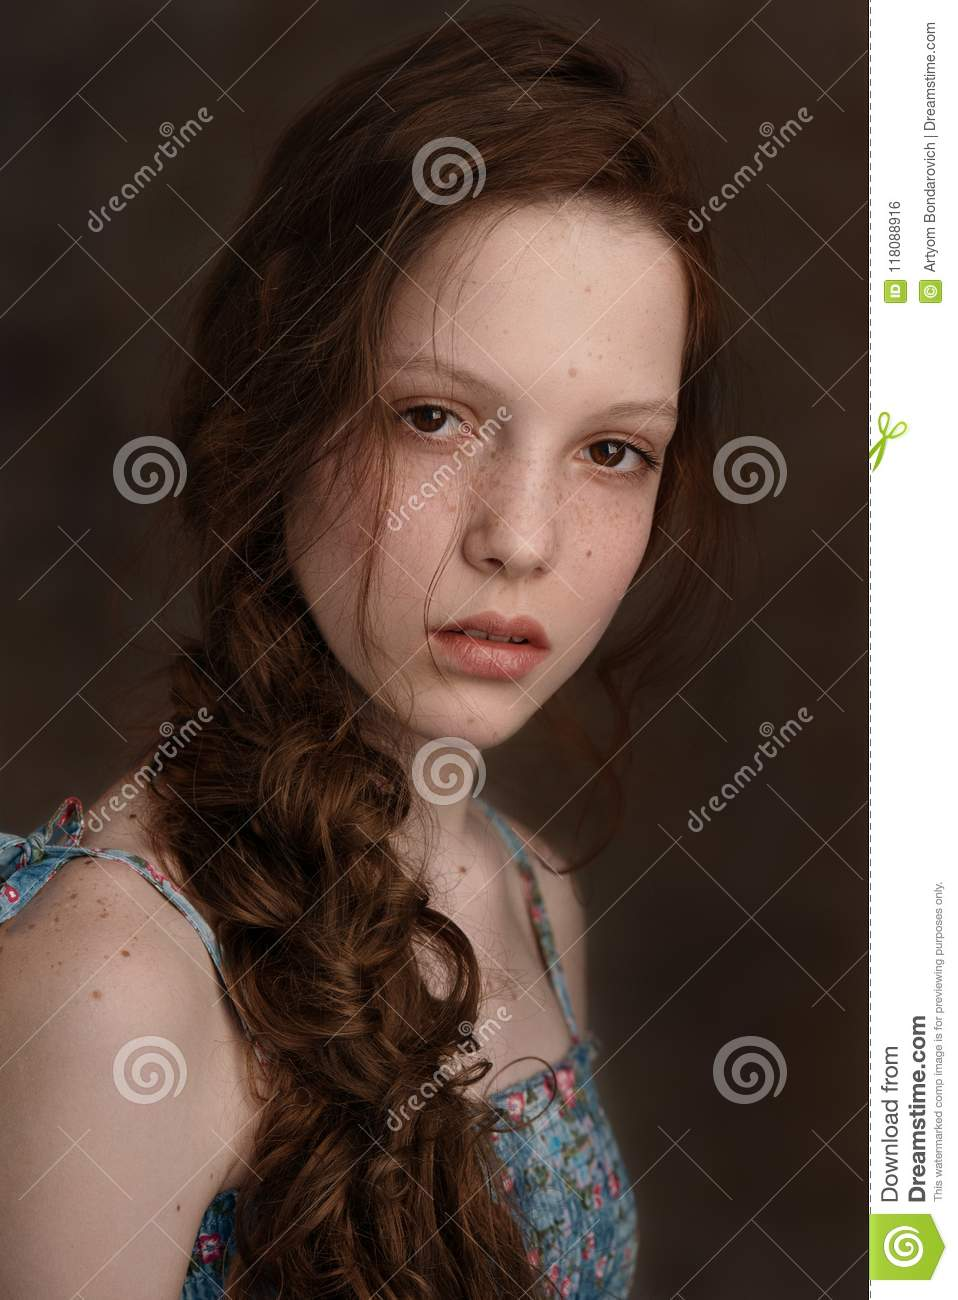 Dramatic Portrait Of A Young Cute Redhead Teenage Girl With Curly